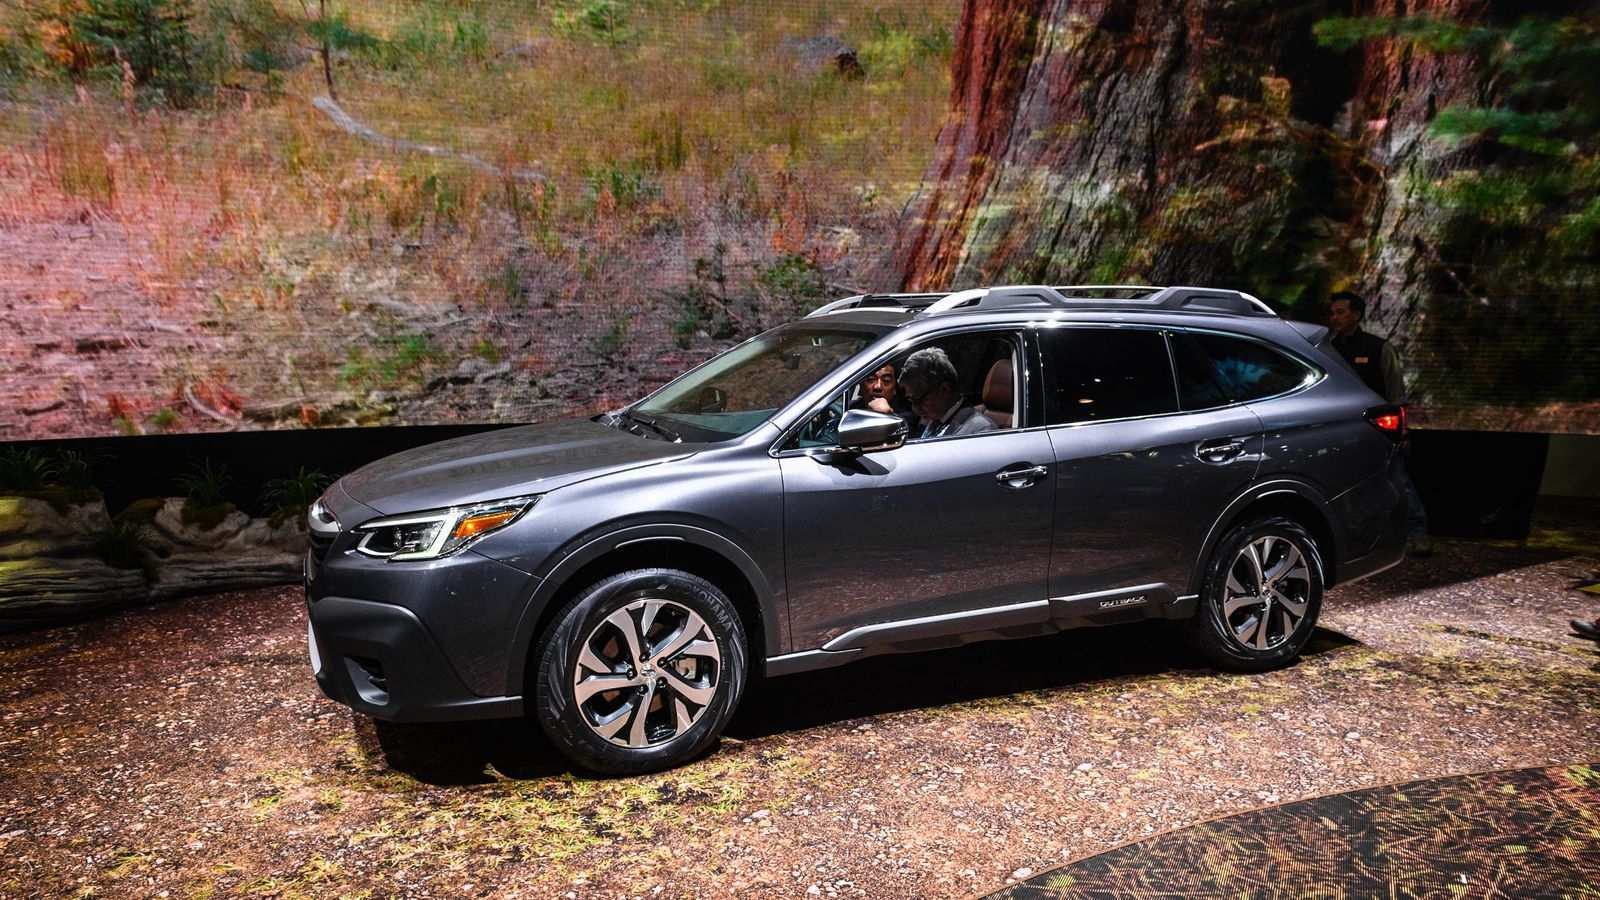 47 The Best 2020 Subaru Outback Unveiling Picture